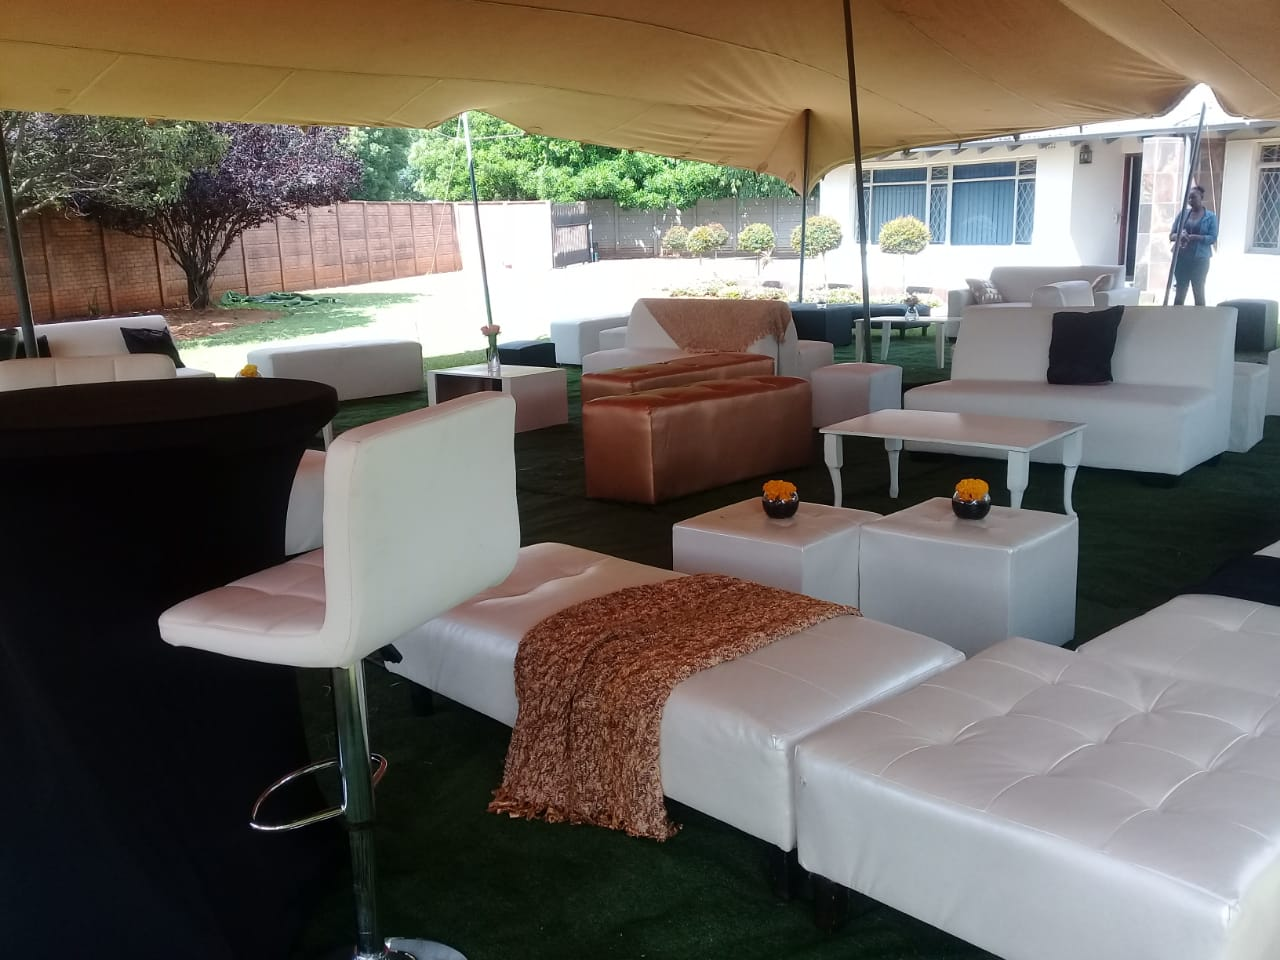 Catering Furniture for hire